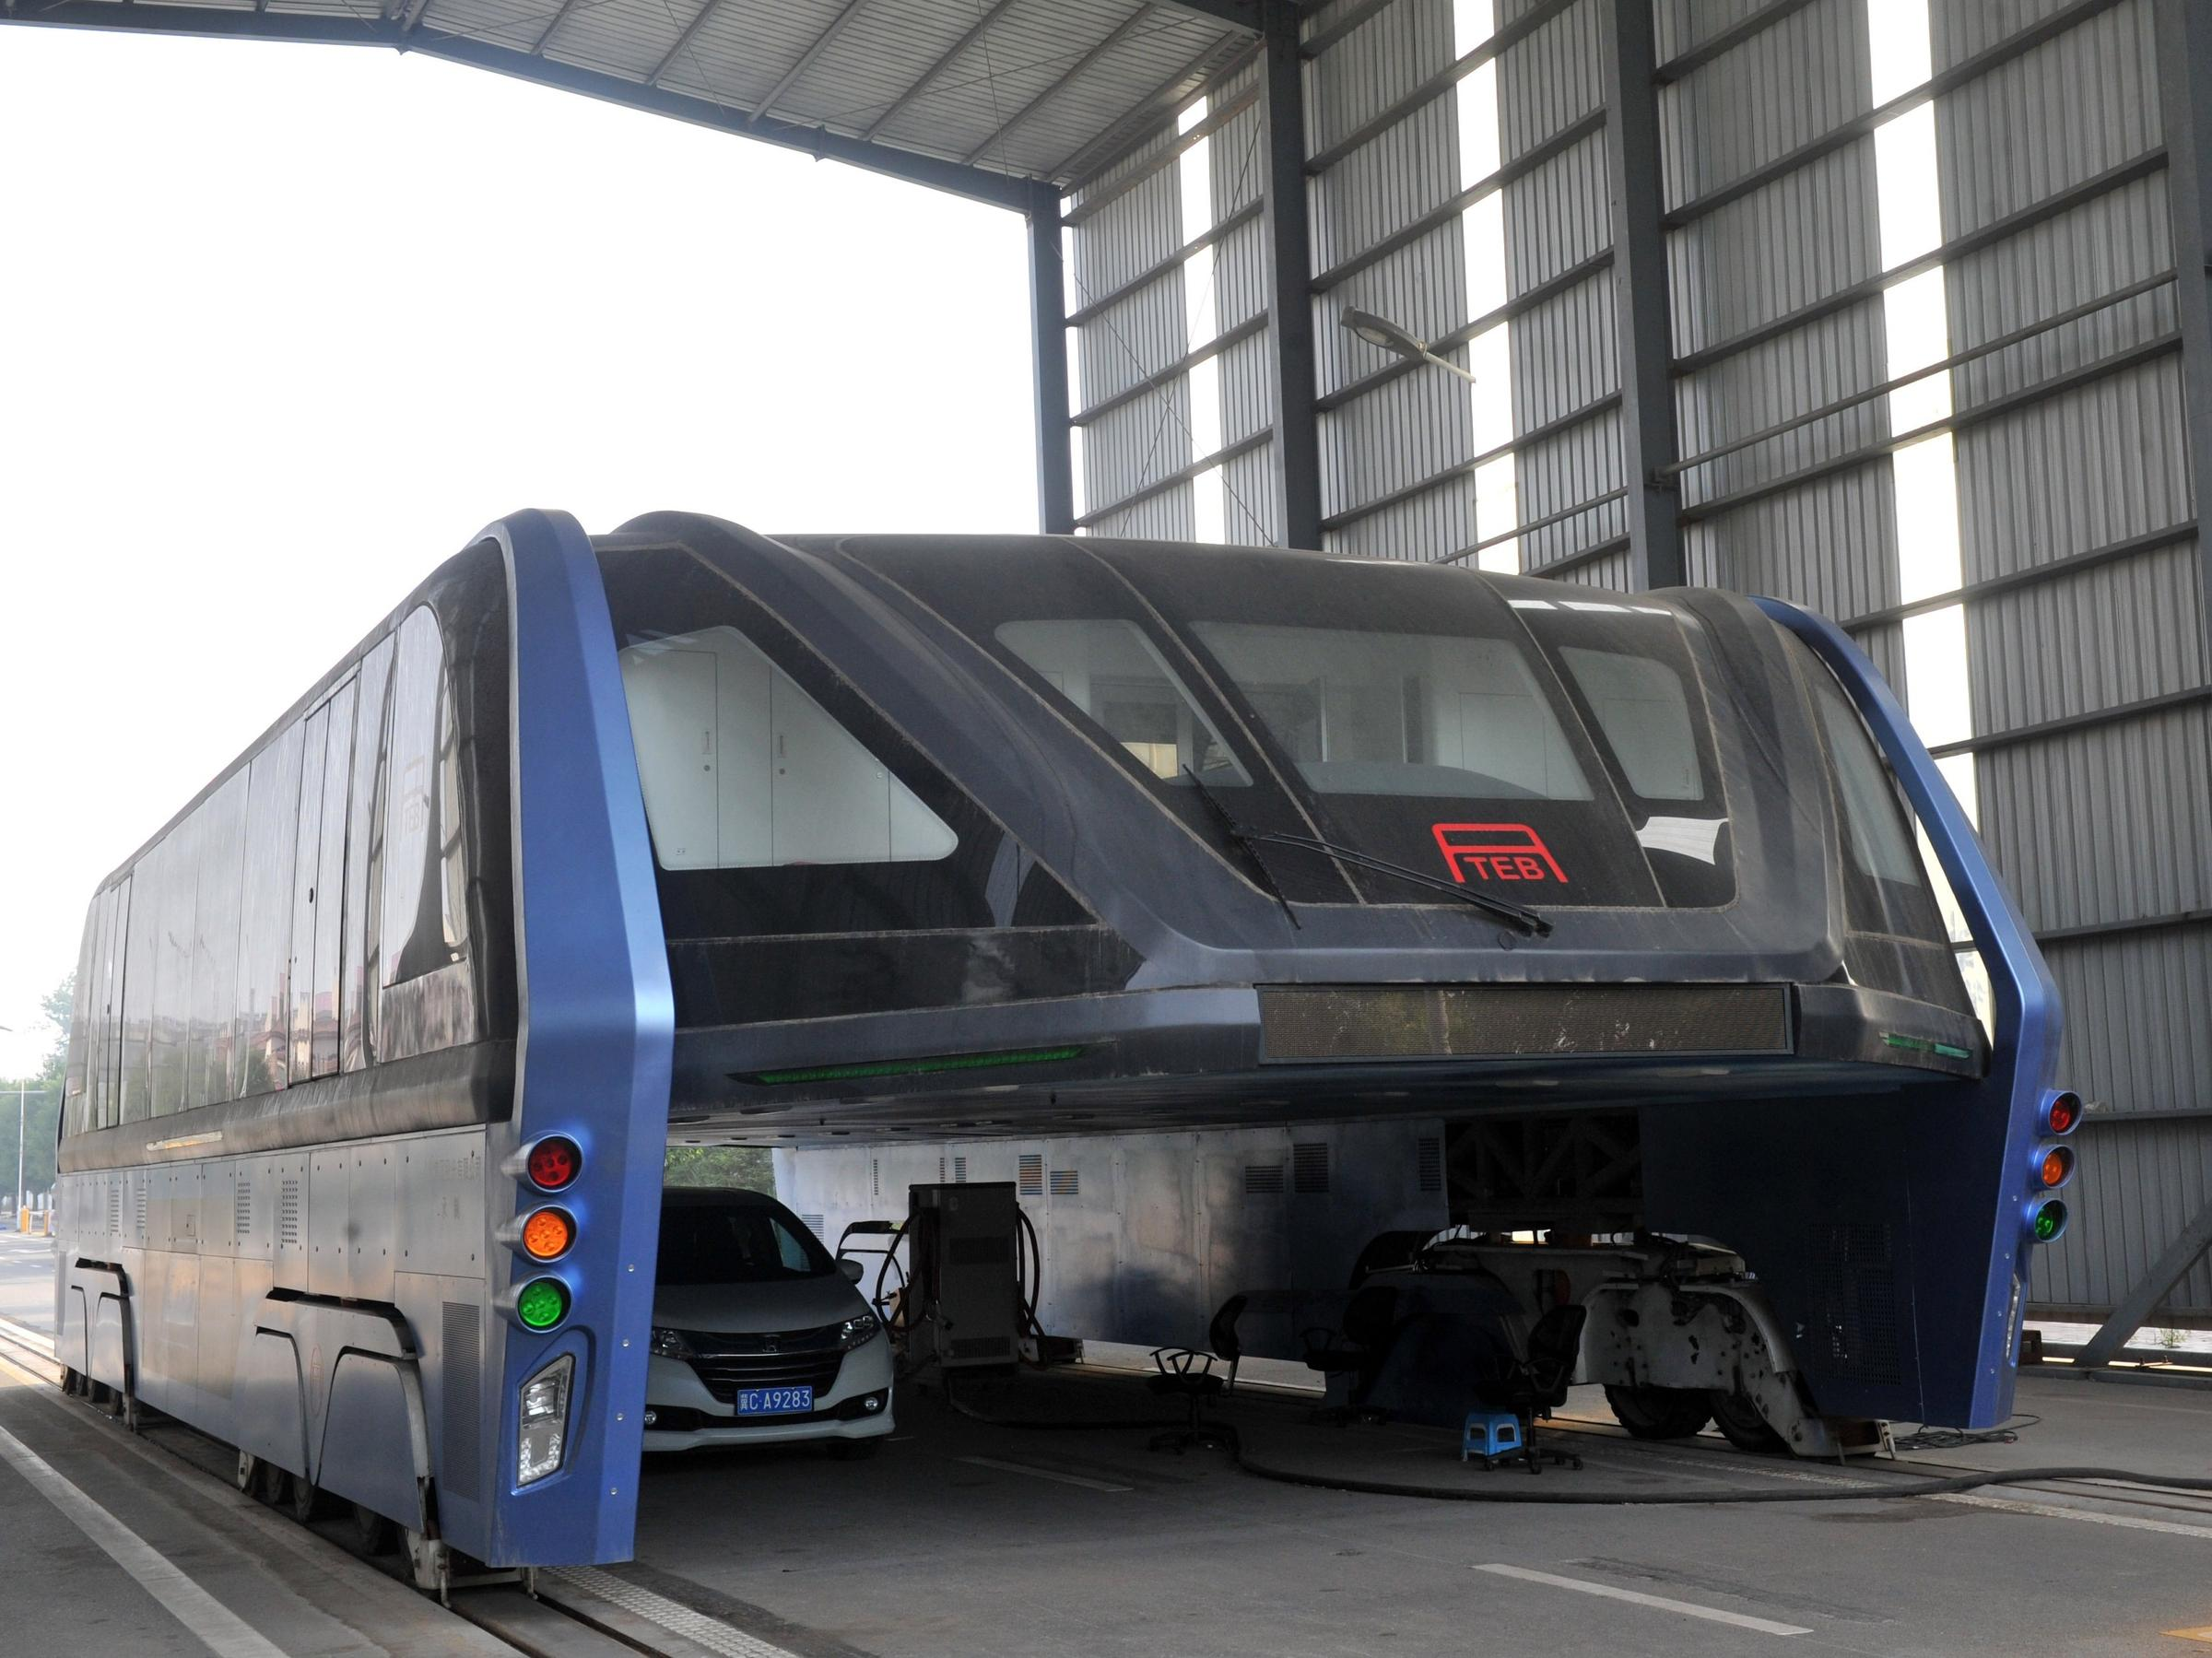 It seems China's straddling bus was a massive scam